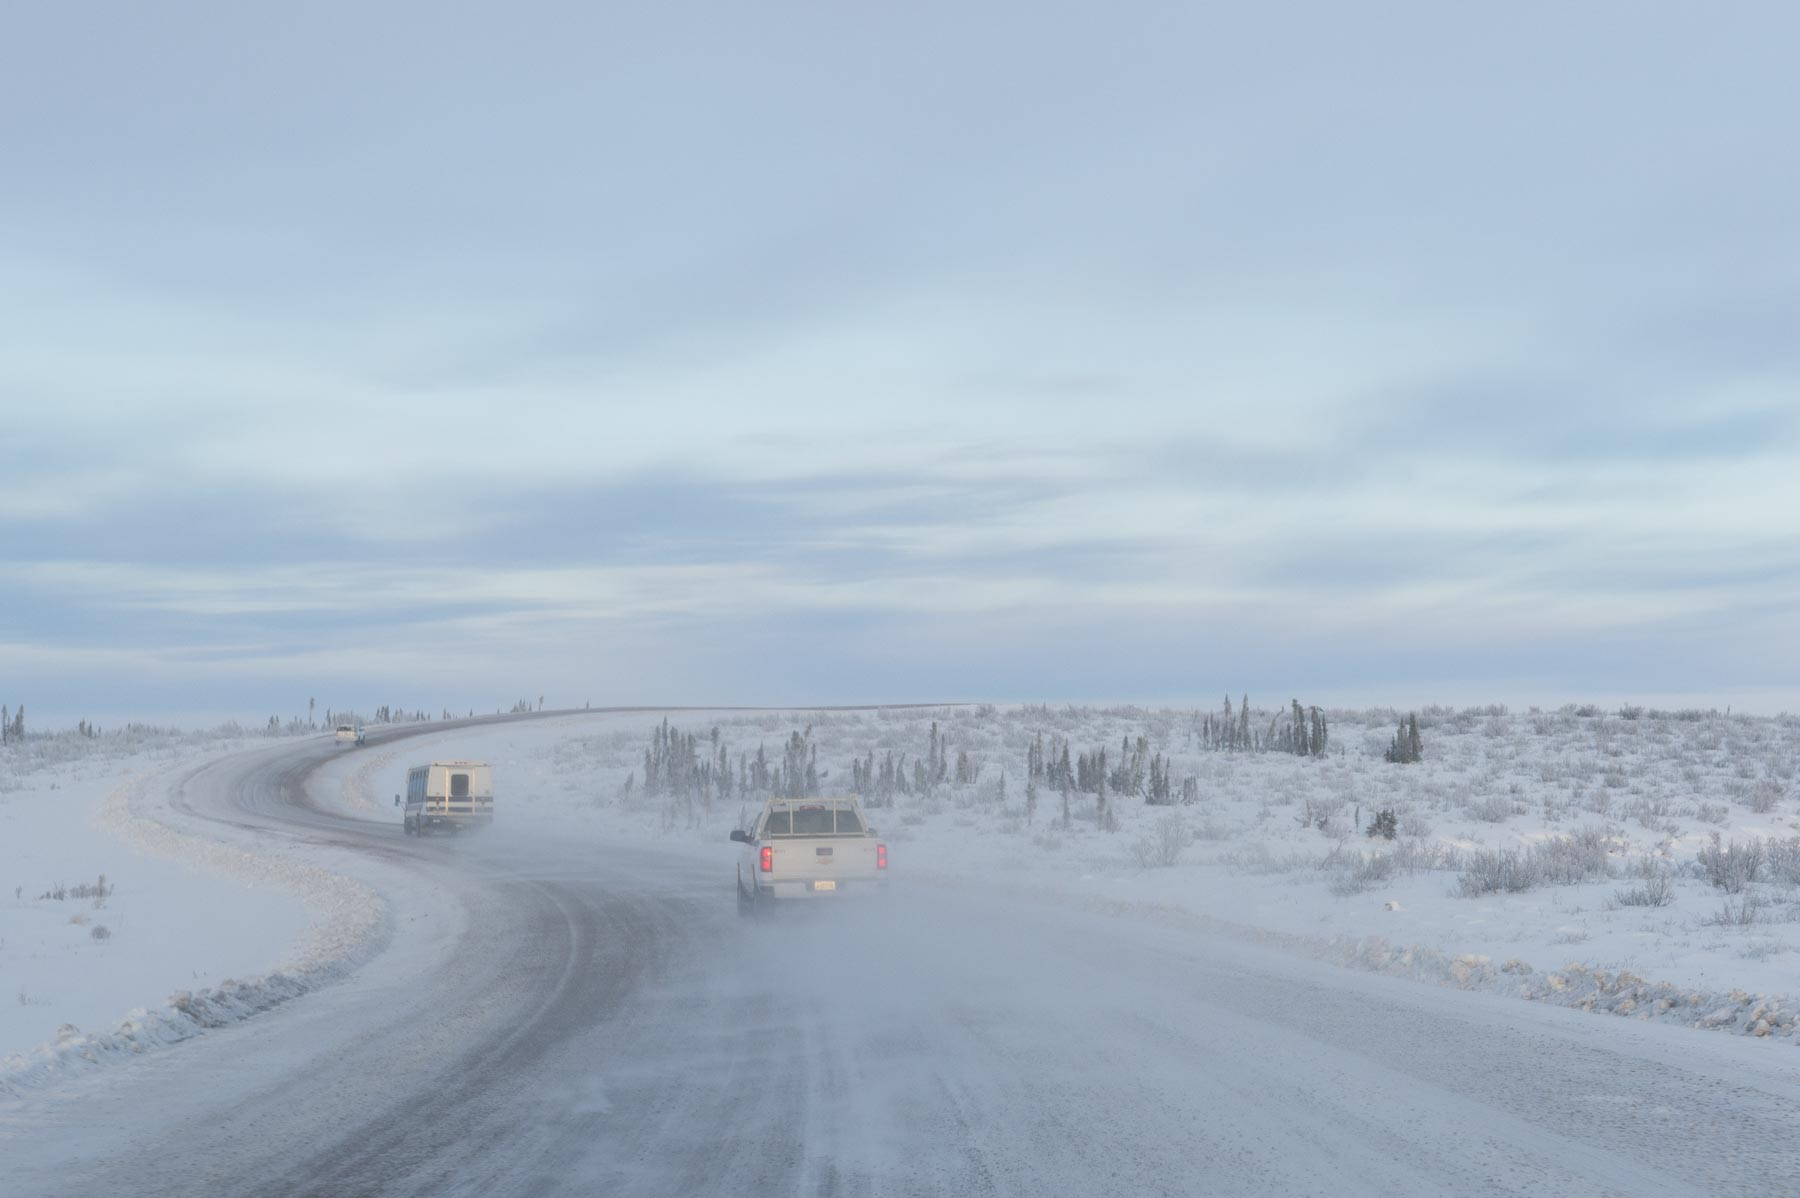 The Inuvik Tuktoyaktuk Highway is a collaborative project that aims to improve the quality of services and reduce the cost of living in the region.